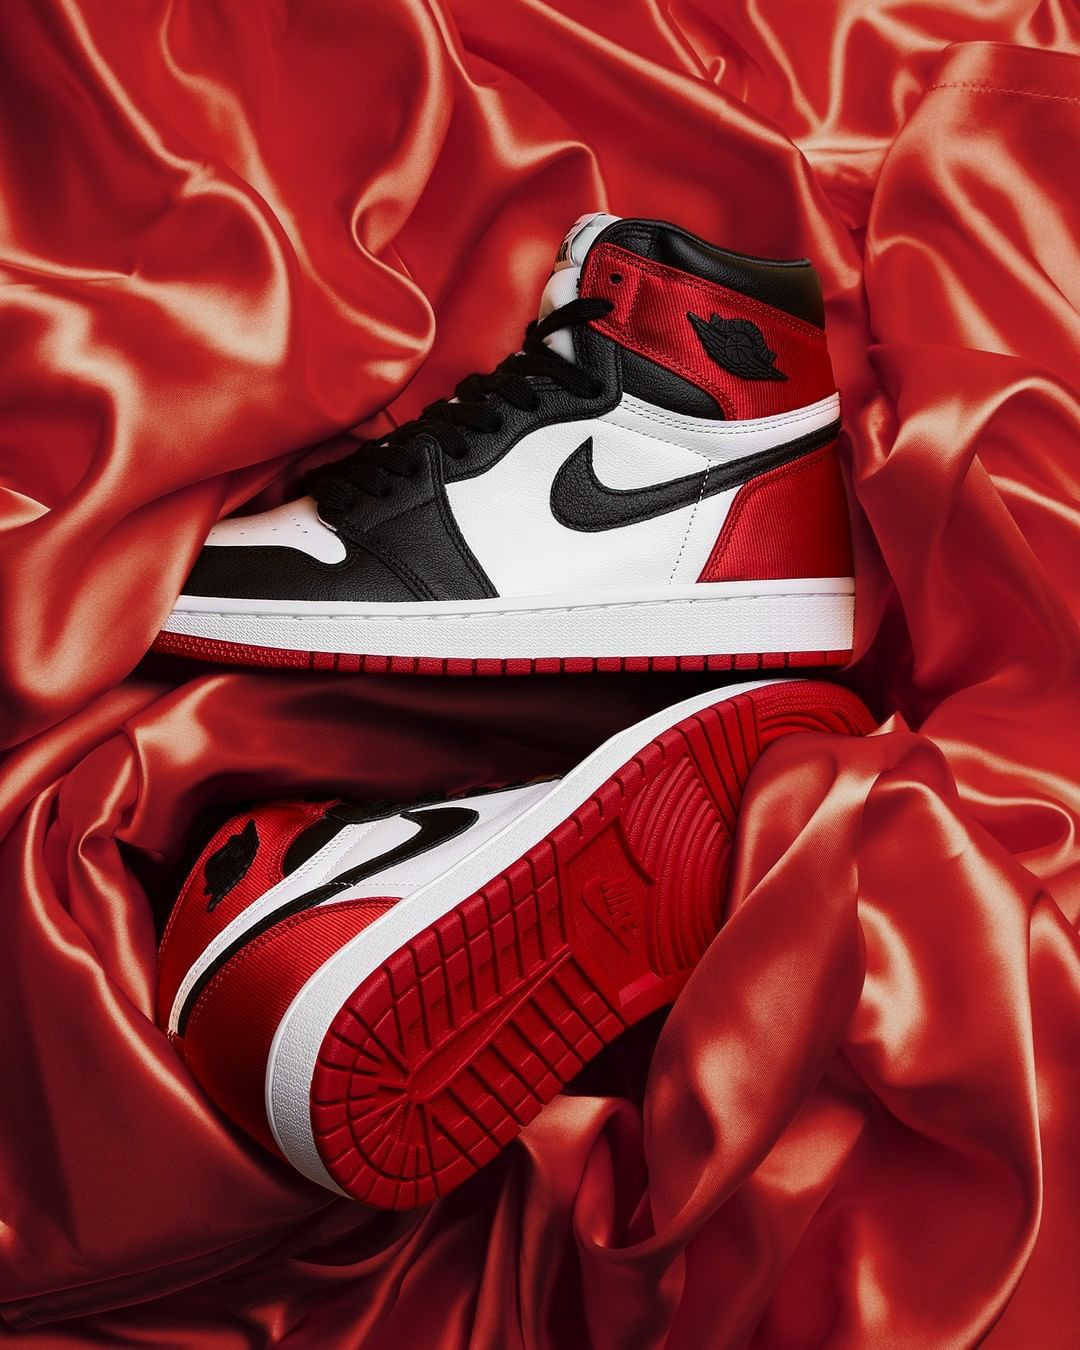 Join Our Raffle For The Wmns Air Jordan 1 Retro Hi Shoes Wallpaper Fashion Outfit Shoes